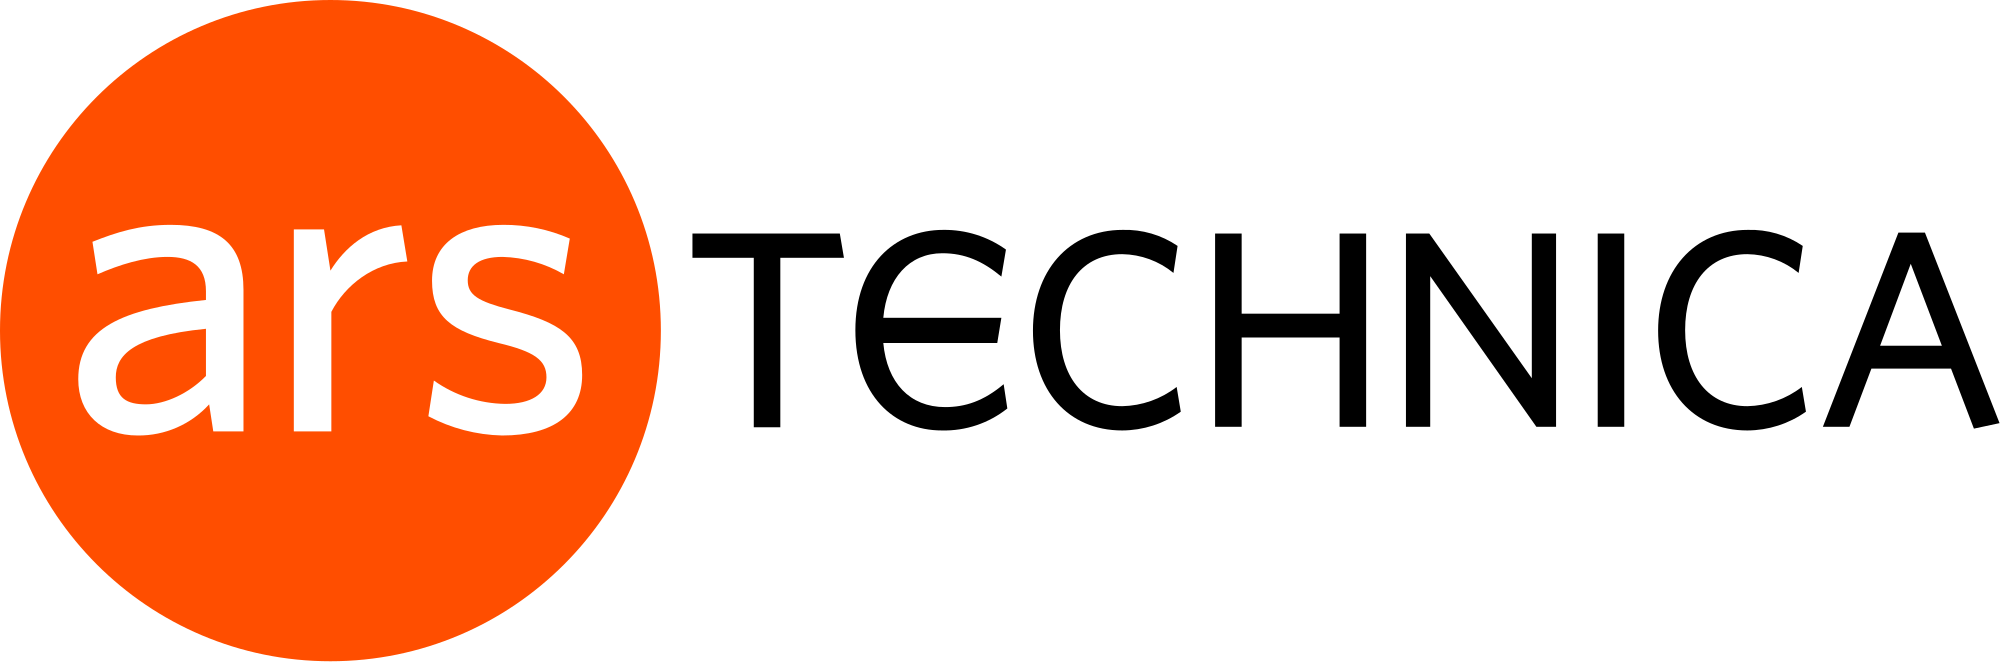 Ars_Technica_logo_(2016).png